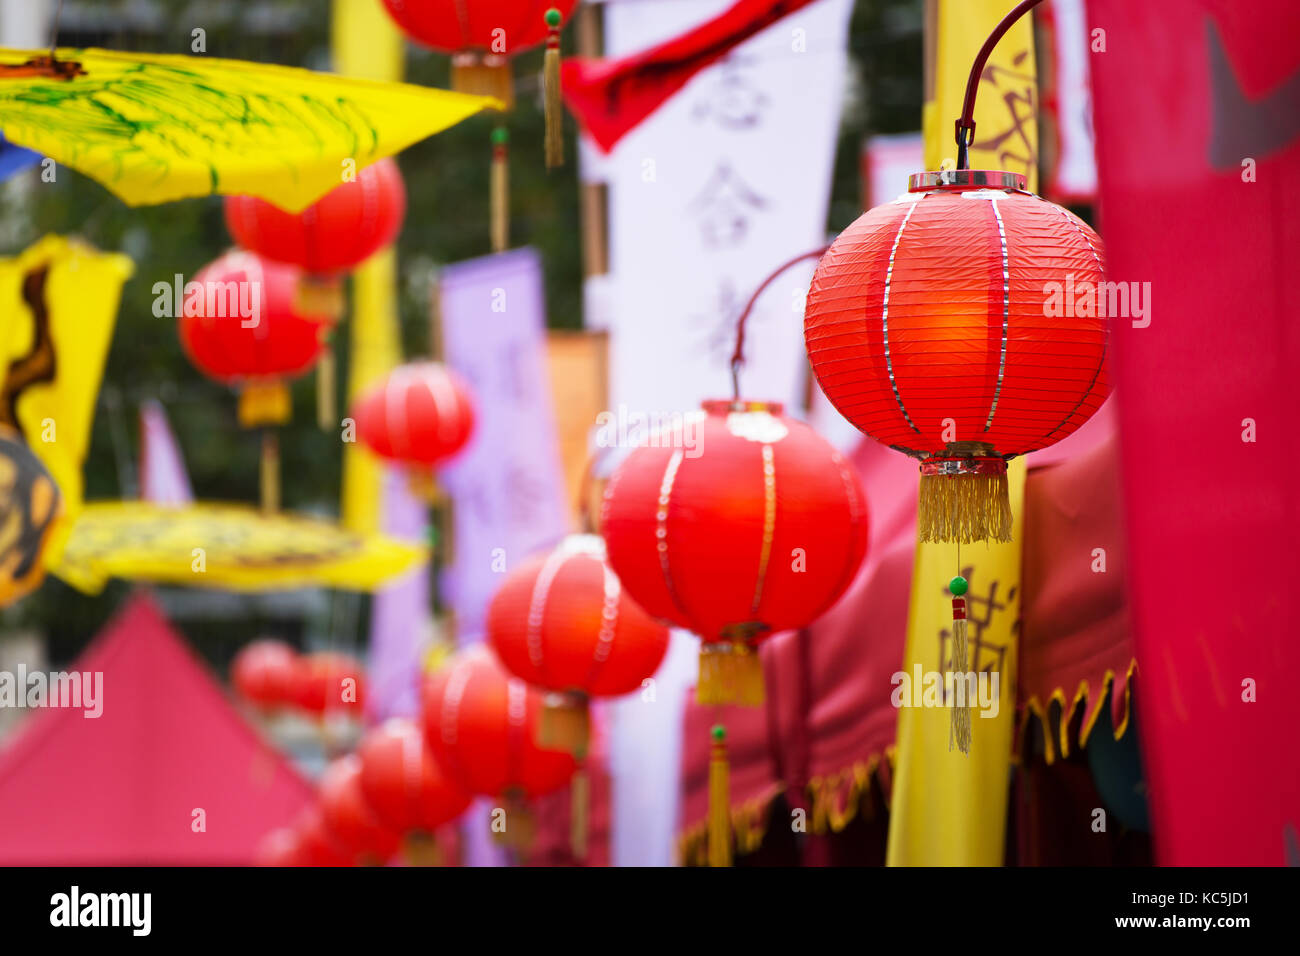 Chinese Market at the China Festival 2017 in Cologne, Germany. - Stock Image